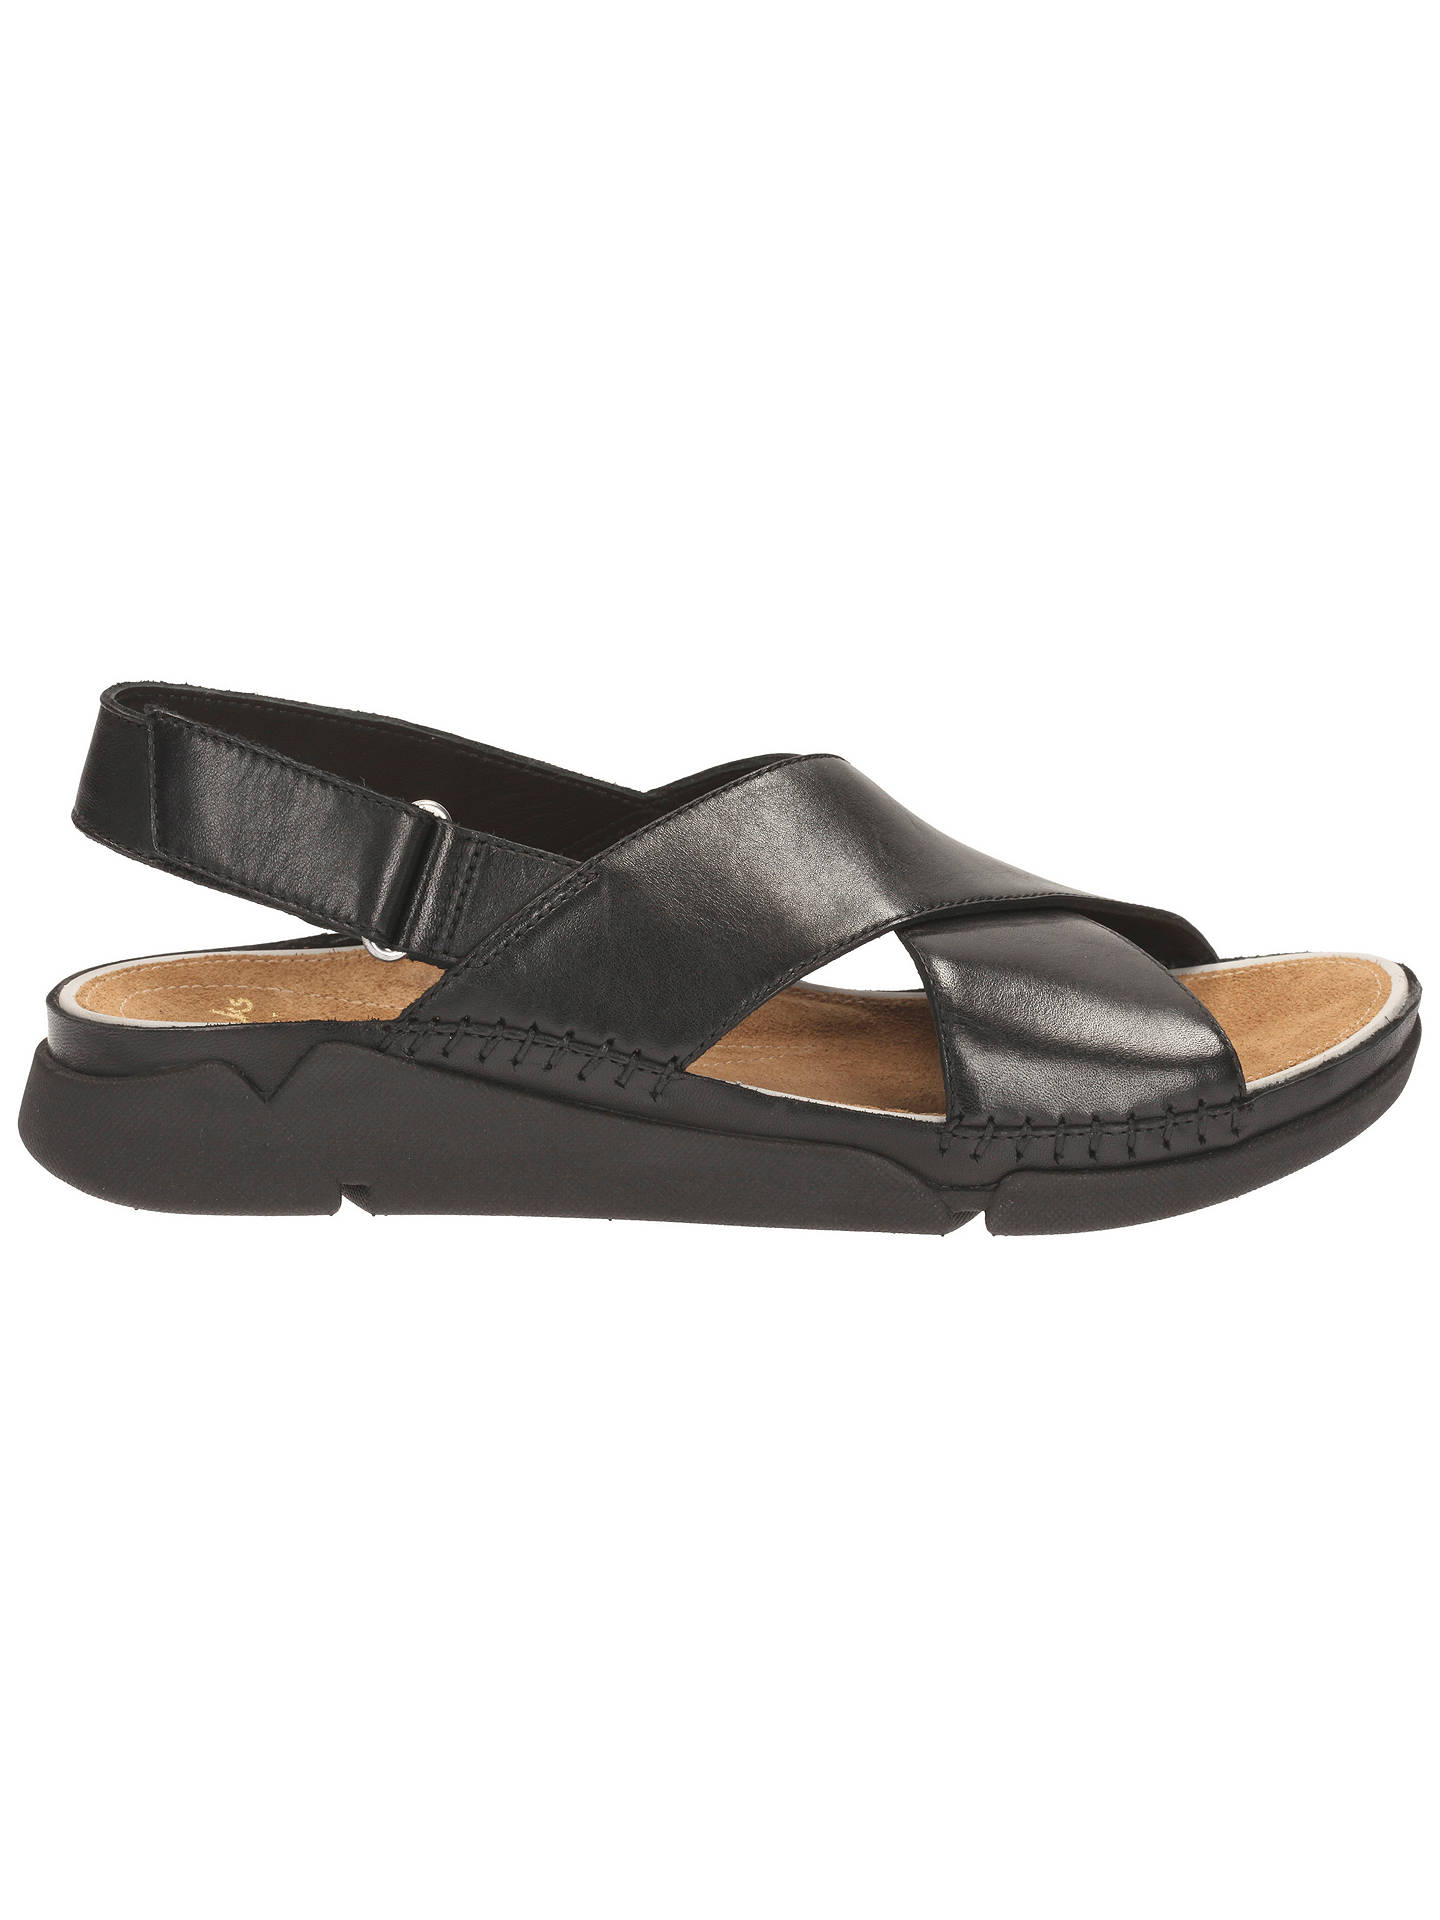 0063dc2916b Clarks Tri Alexia Leather Sandals at John Lewis   Partners